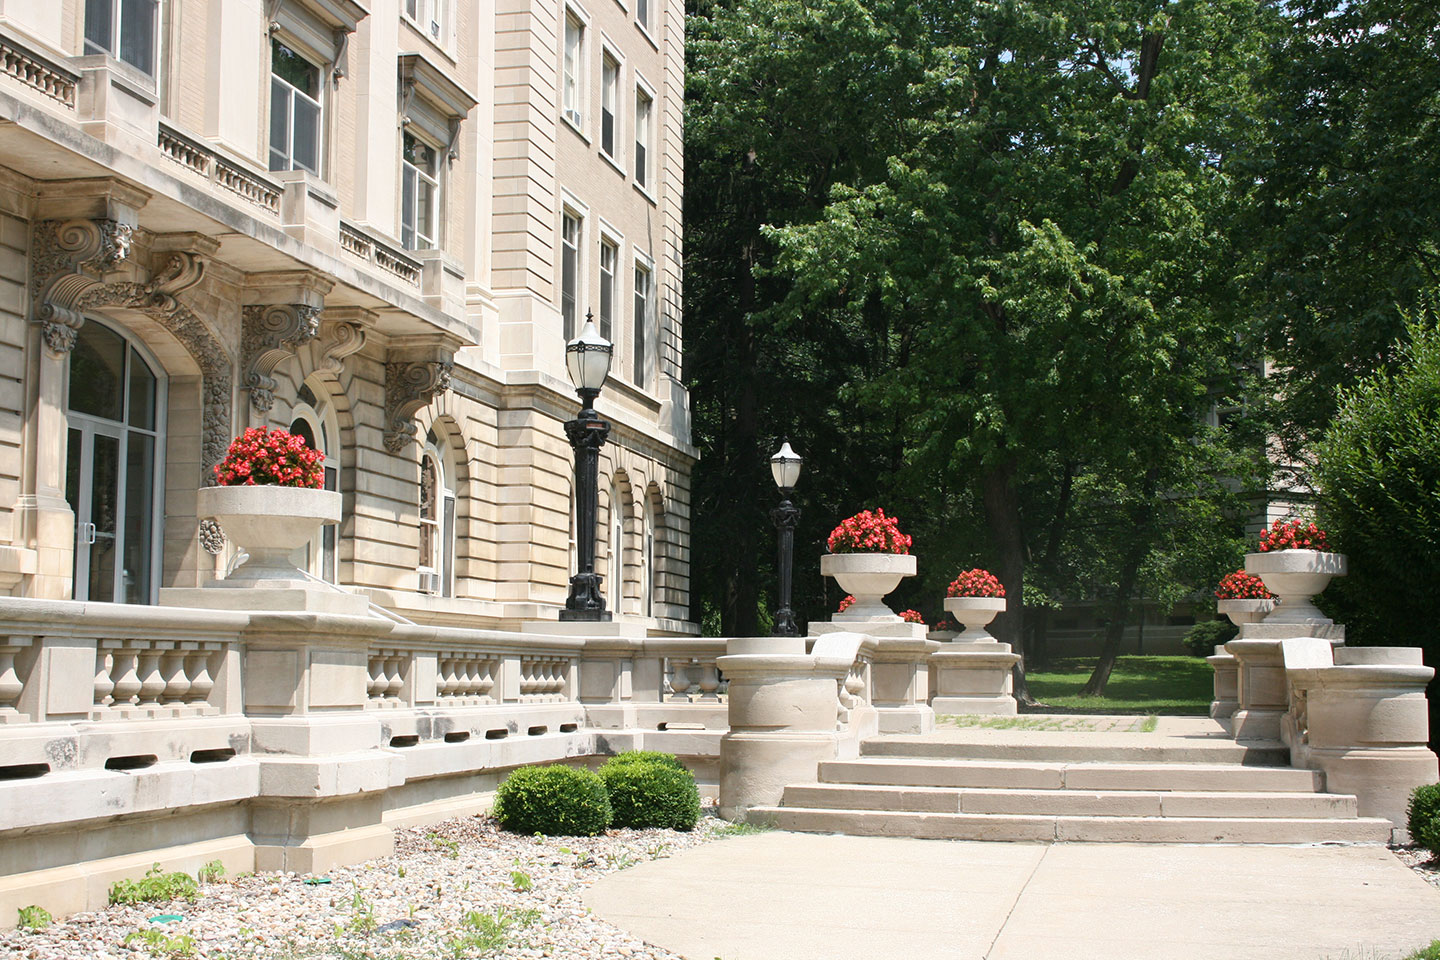 Steps of the Guerin Porch with flowers